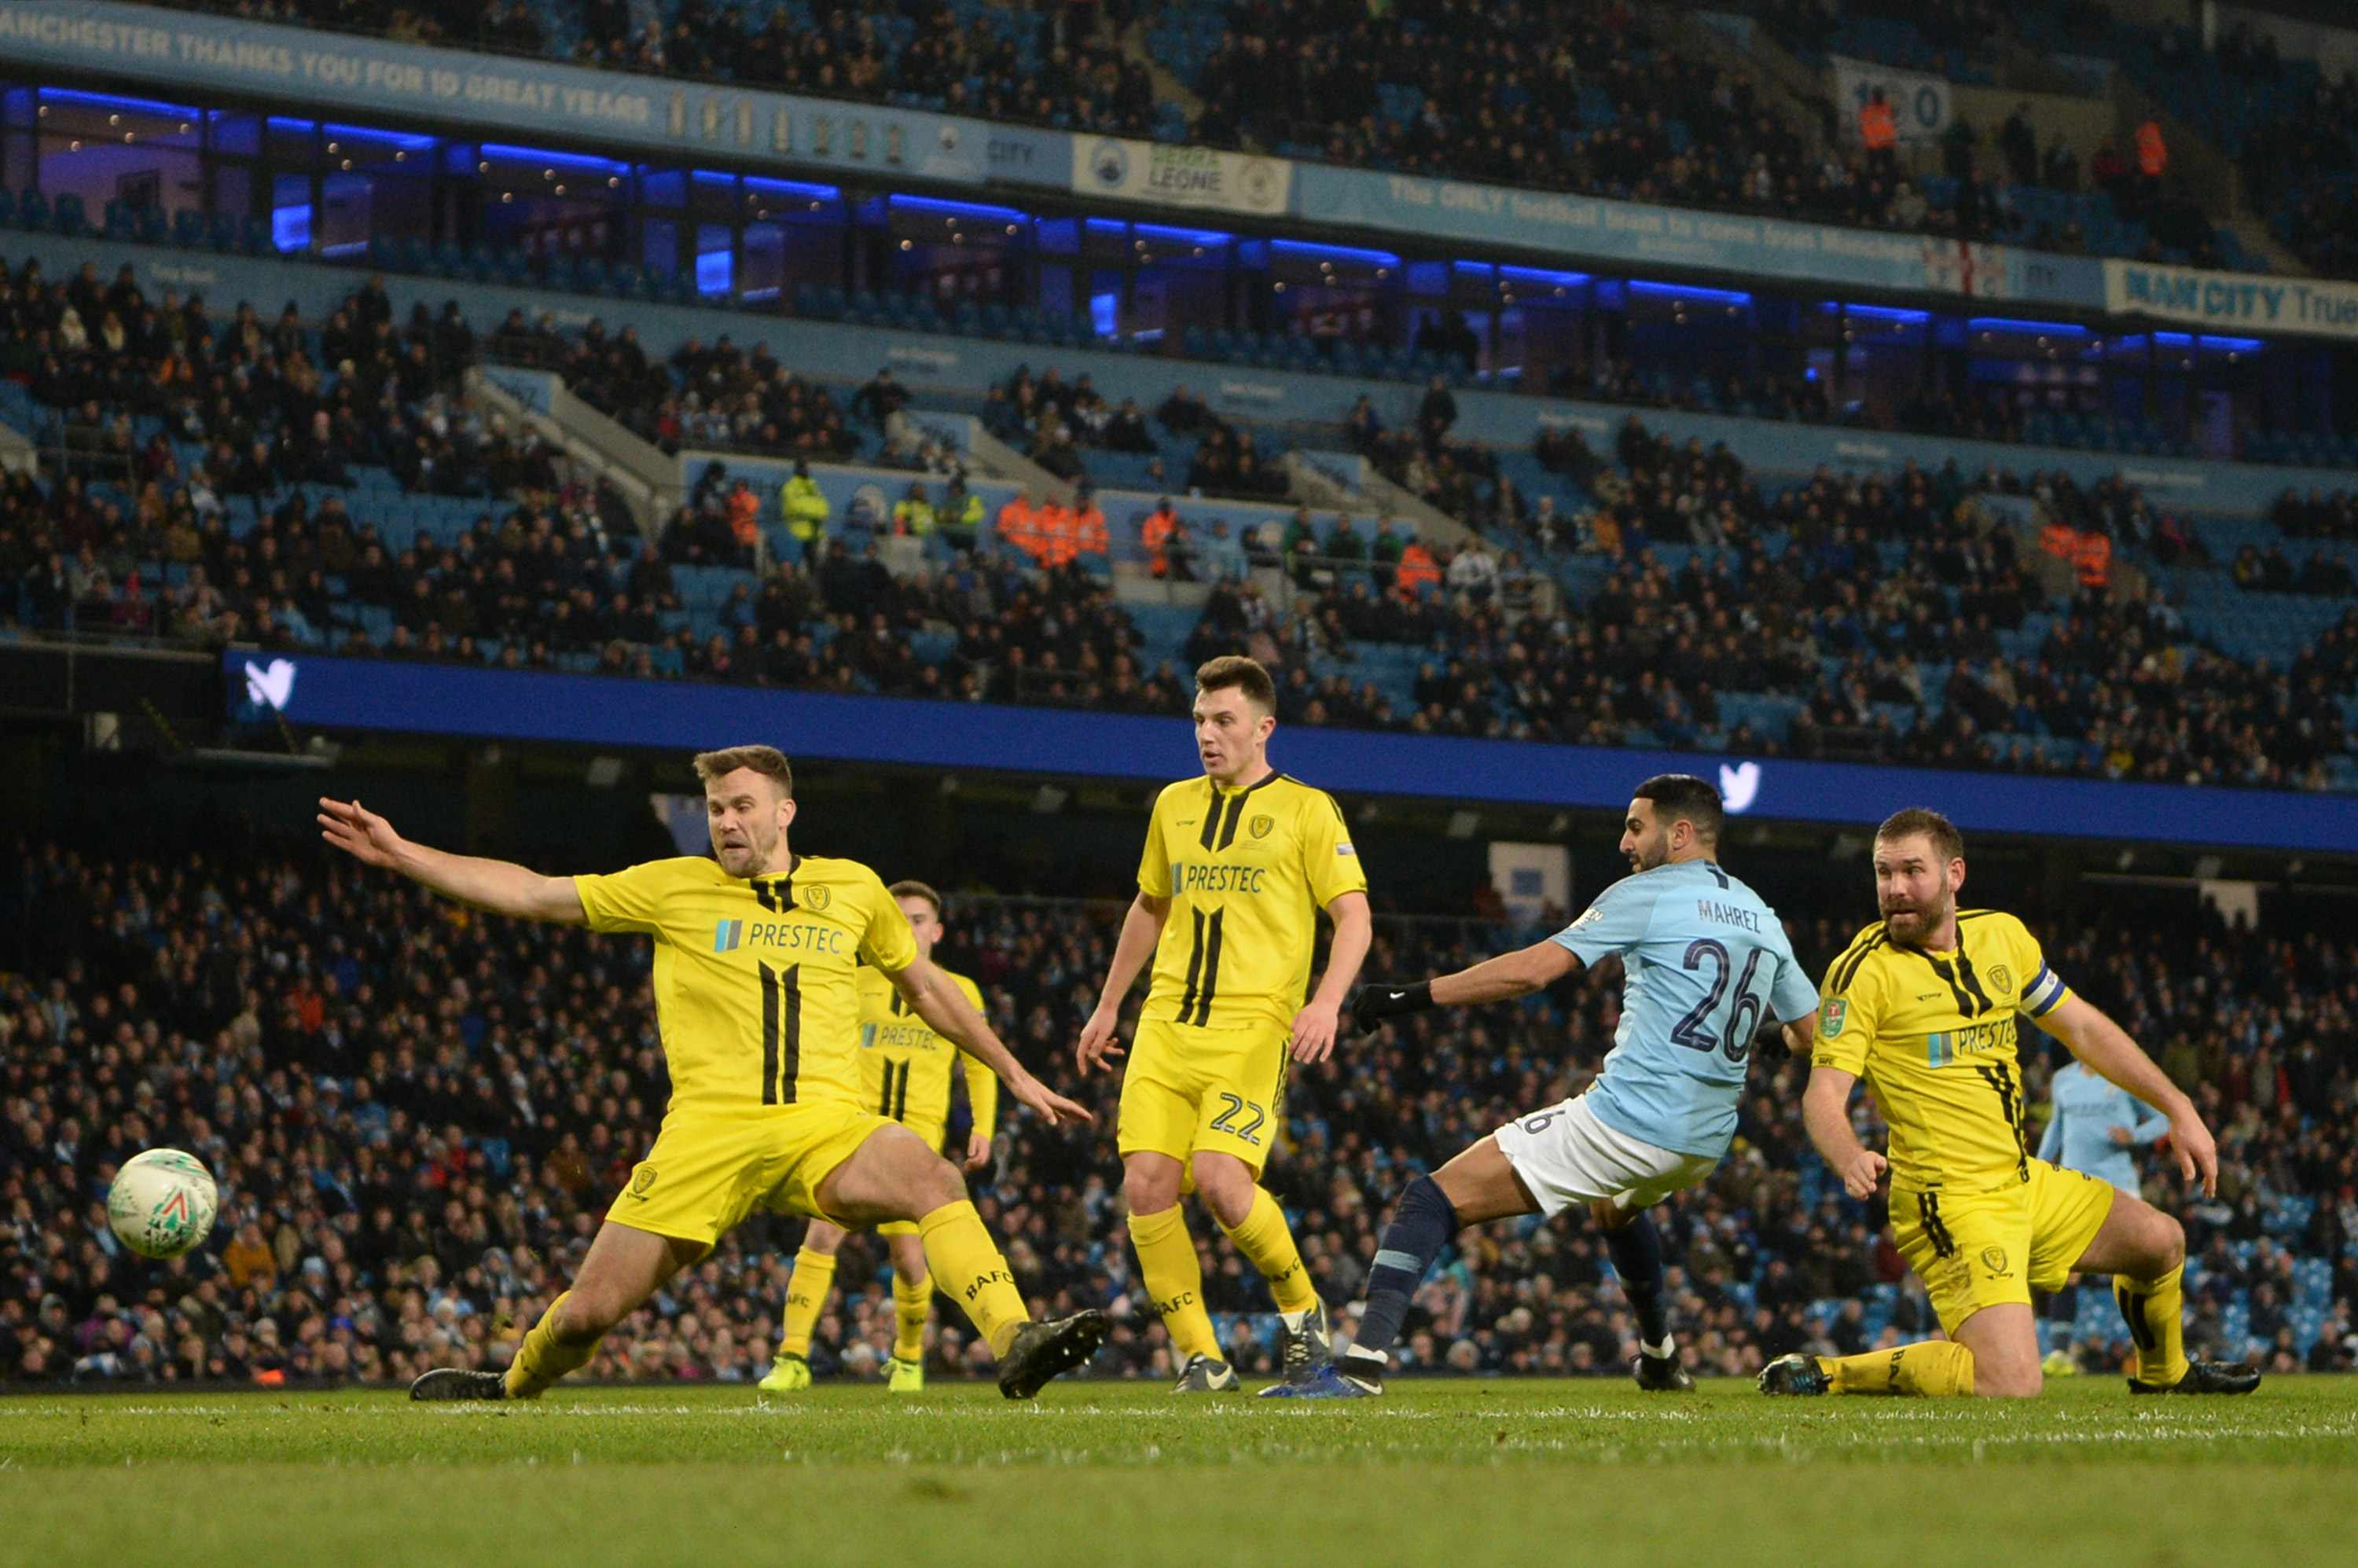 MANCHESTER, ENGLAND - JANUARY 09: (EDITORS NOTE: Recrop of image number 1079814908)  Riyad Mahrez of Manchester City scores his team's ninth goal during the Carabao Cup Semi Final First Leg match between Manchester City and Burton Albion at Etihad Stadium on January 9, 2019 in Manchester, United Kingdom. (Photo by Michael Regan/Getty Images)